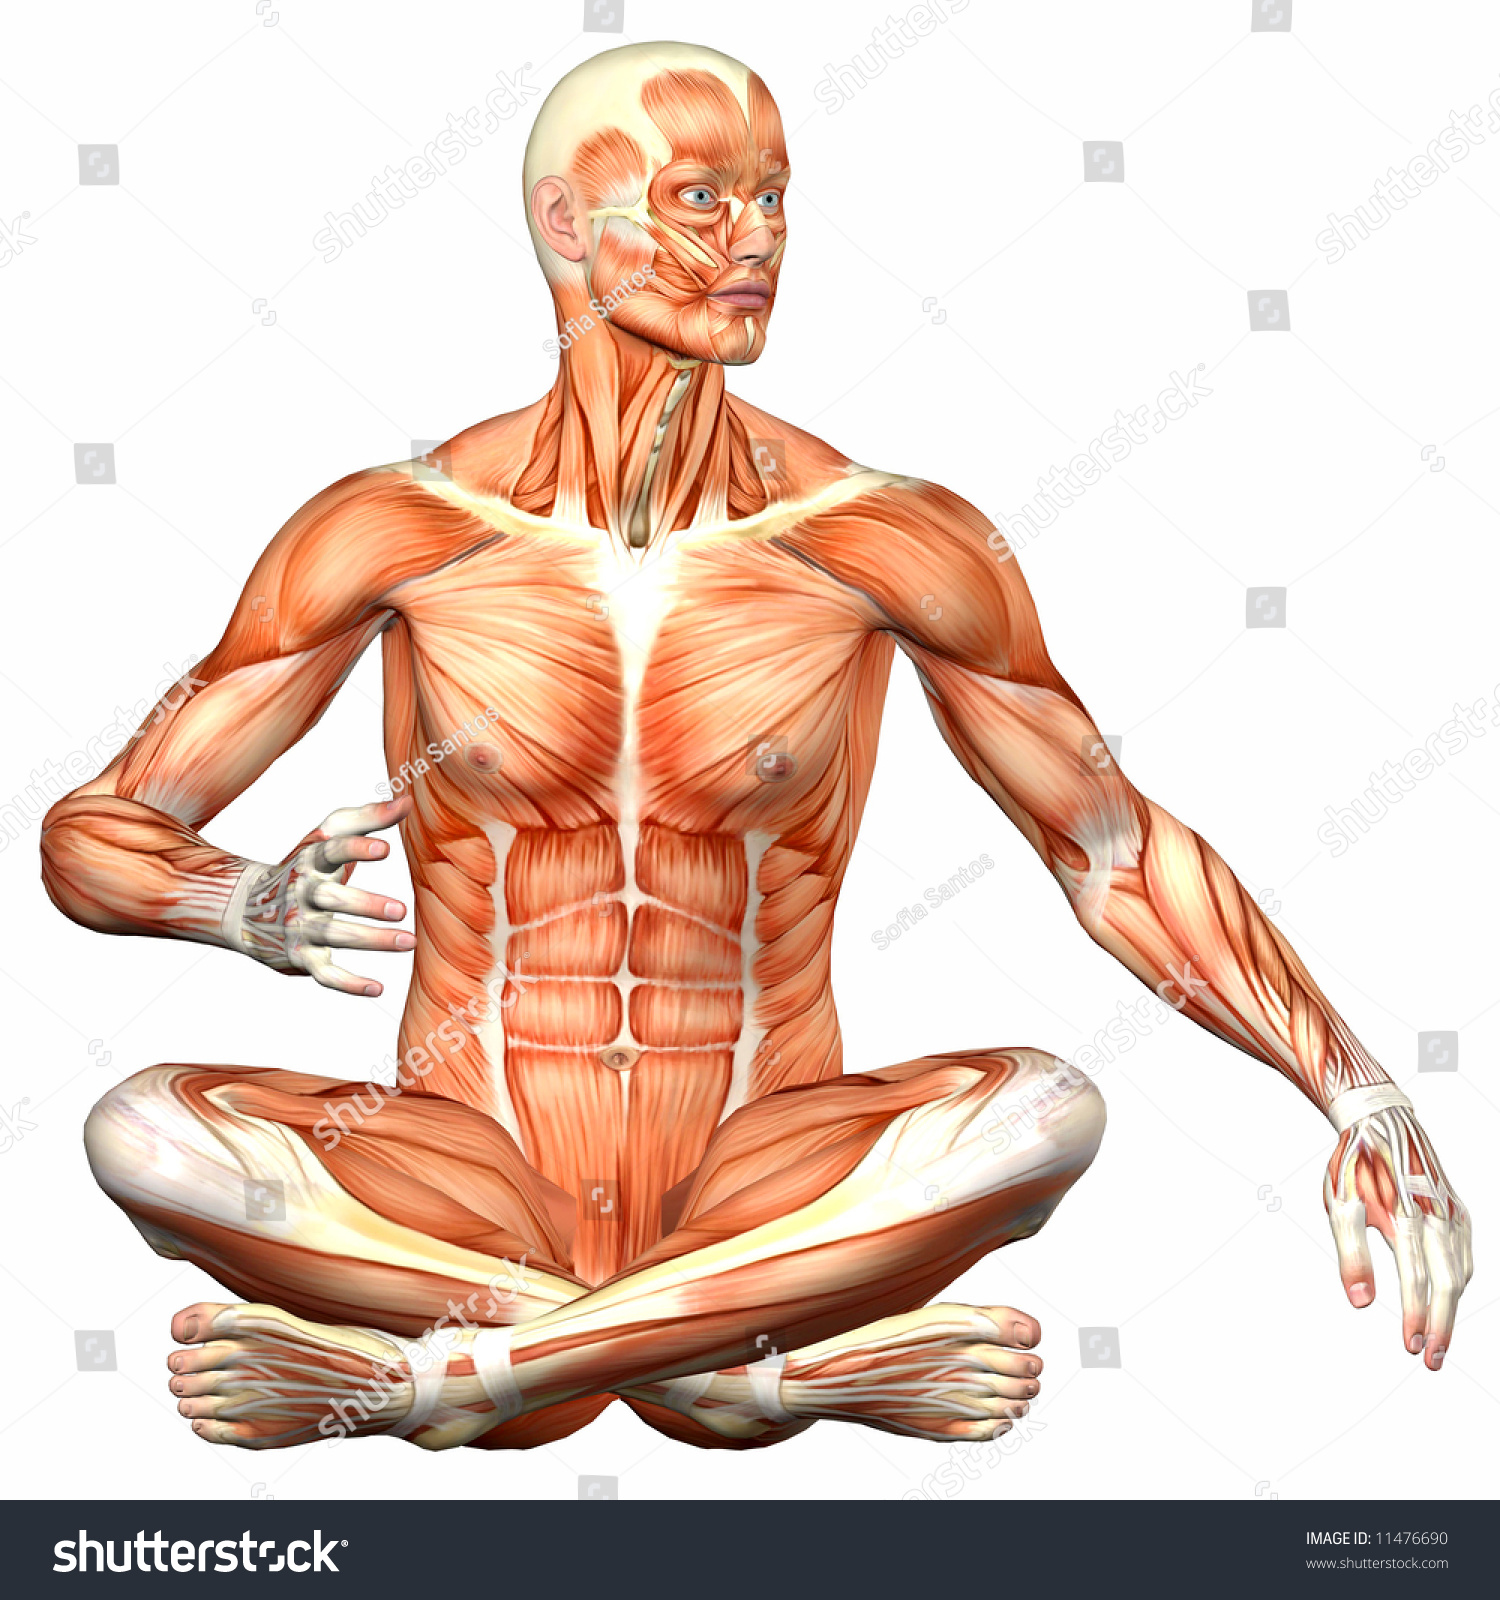 Royalty Free Stock Illustration Of Male Human Body Anatomy Stock